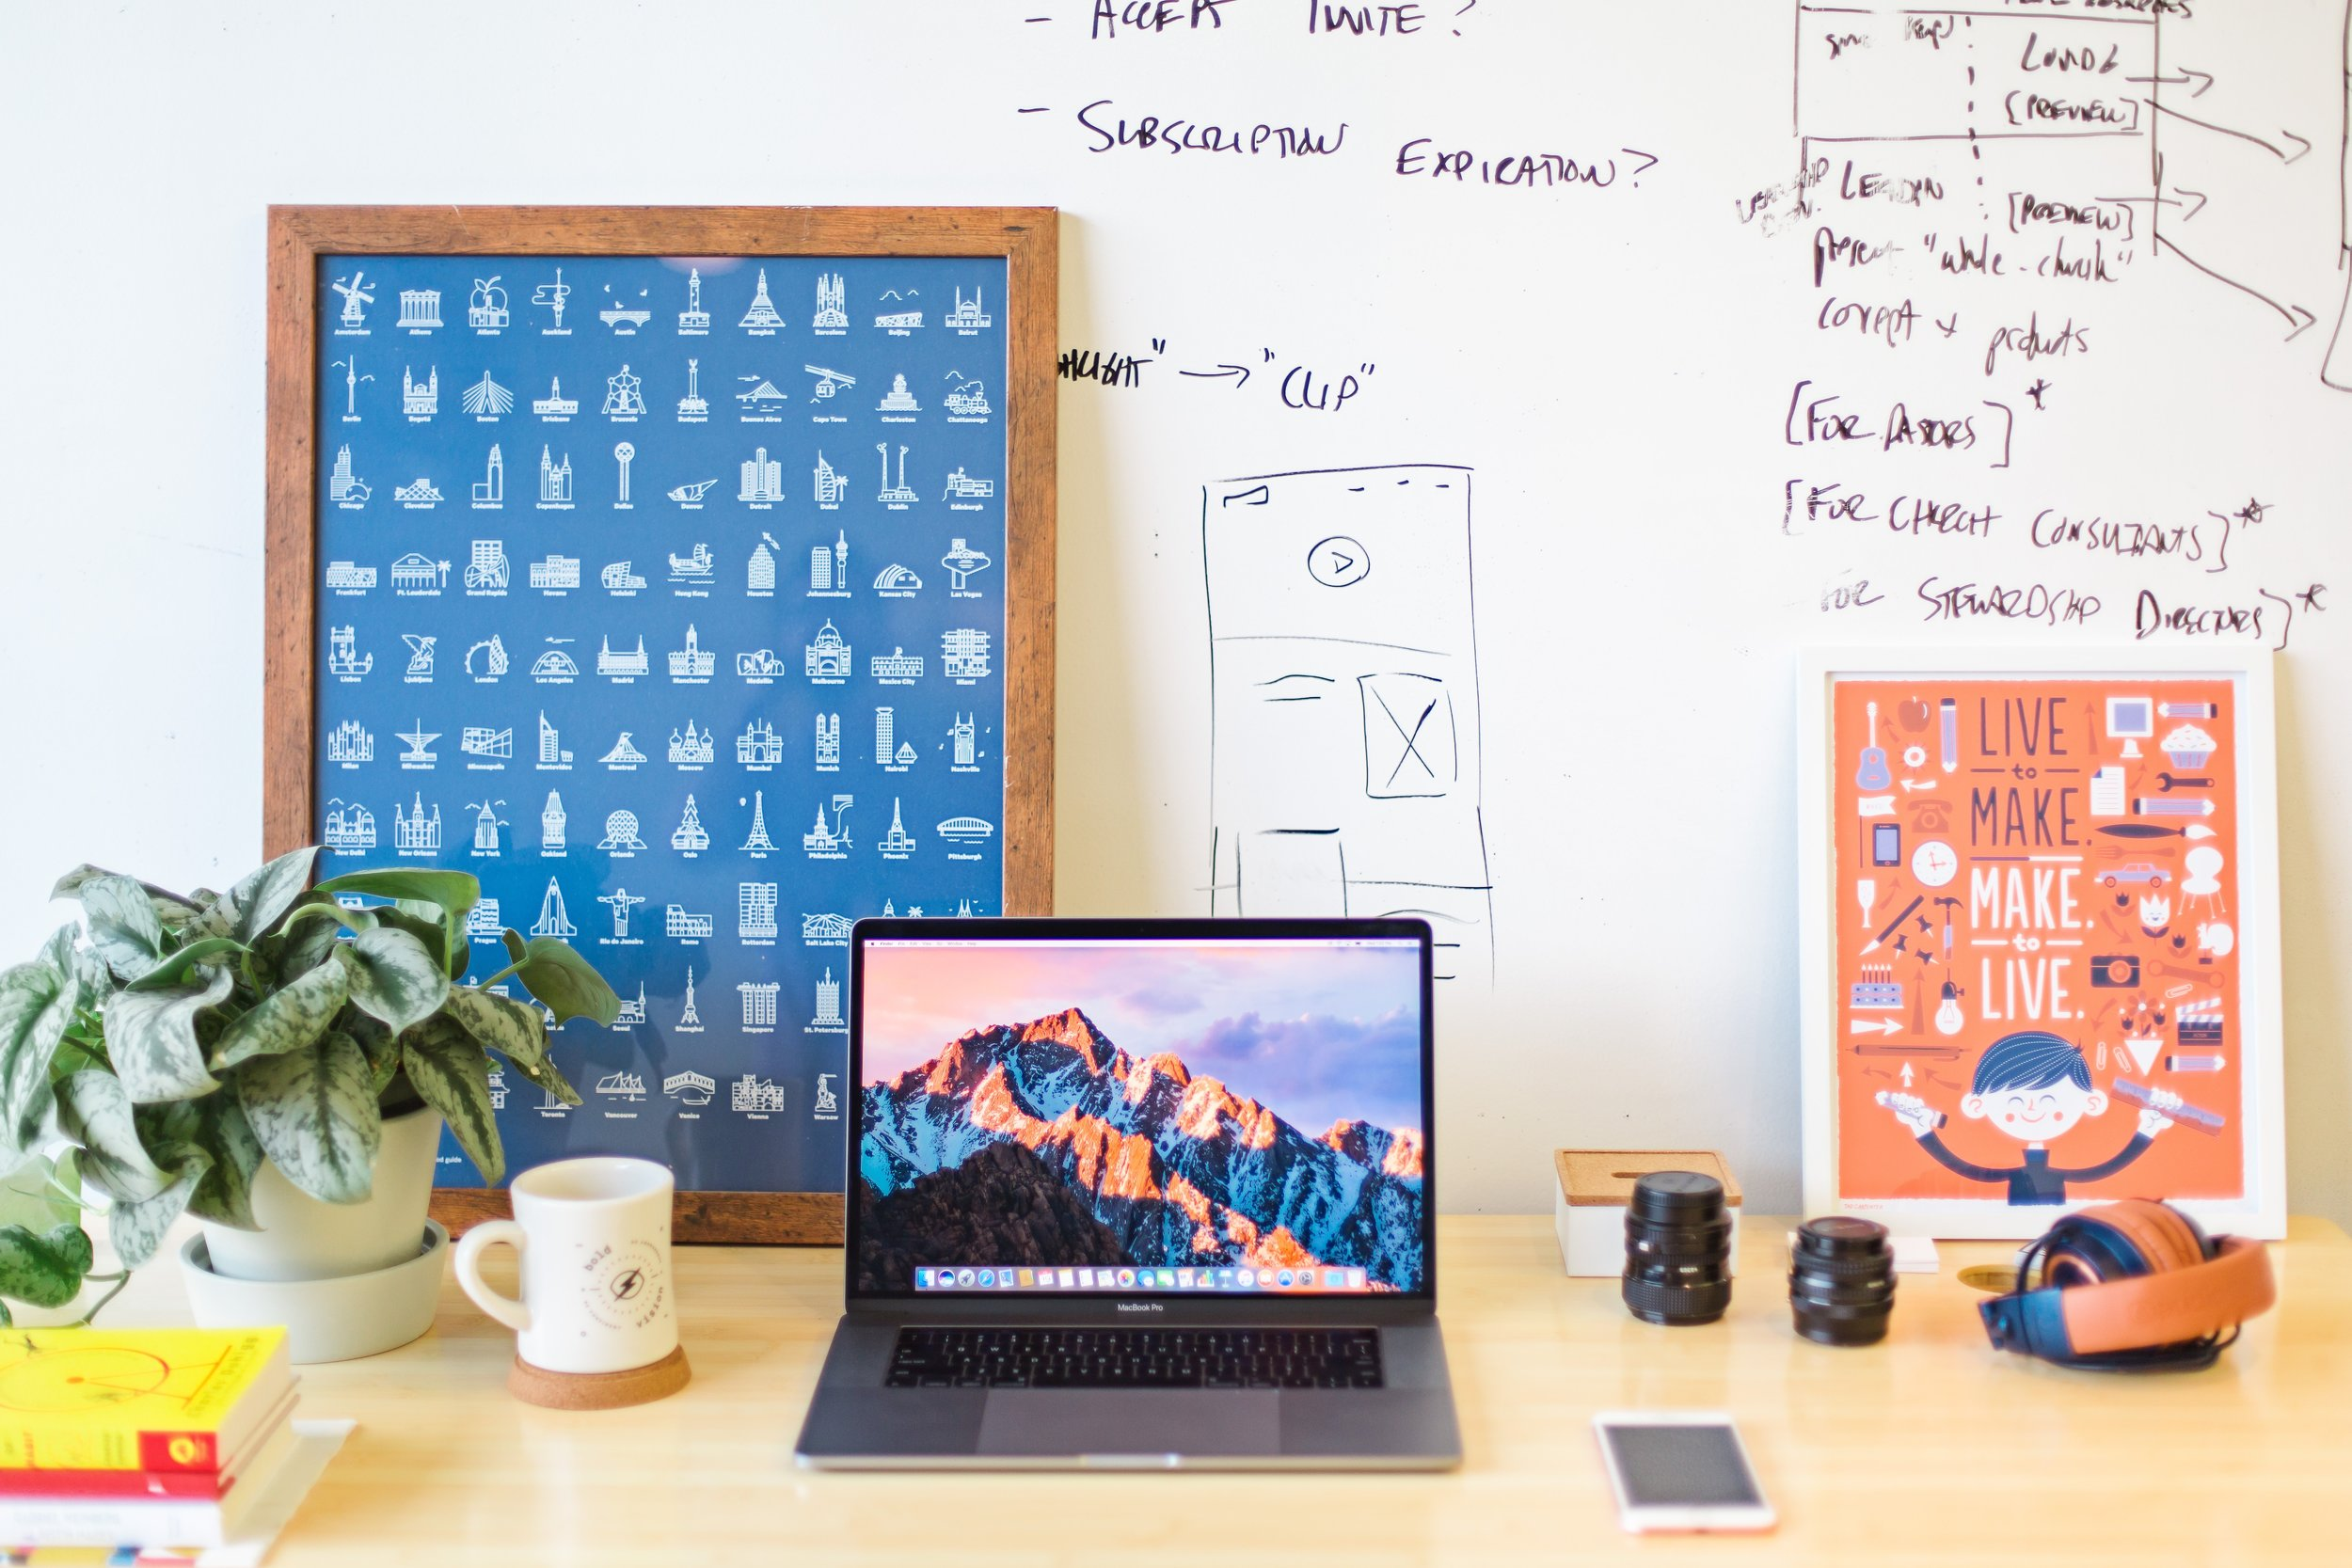 Applying for a Patent - What is a patent? How to obtain a patent? And what are the costs?